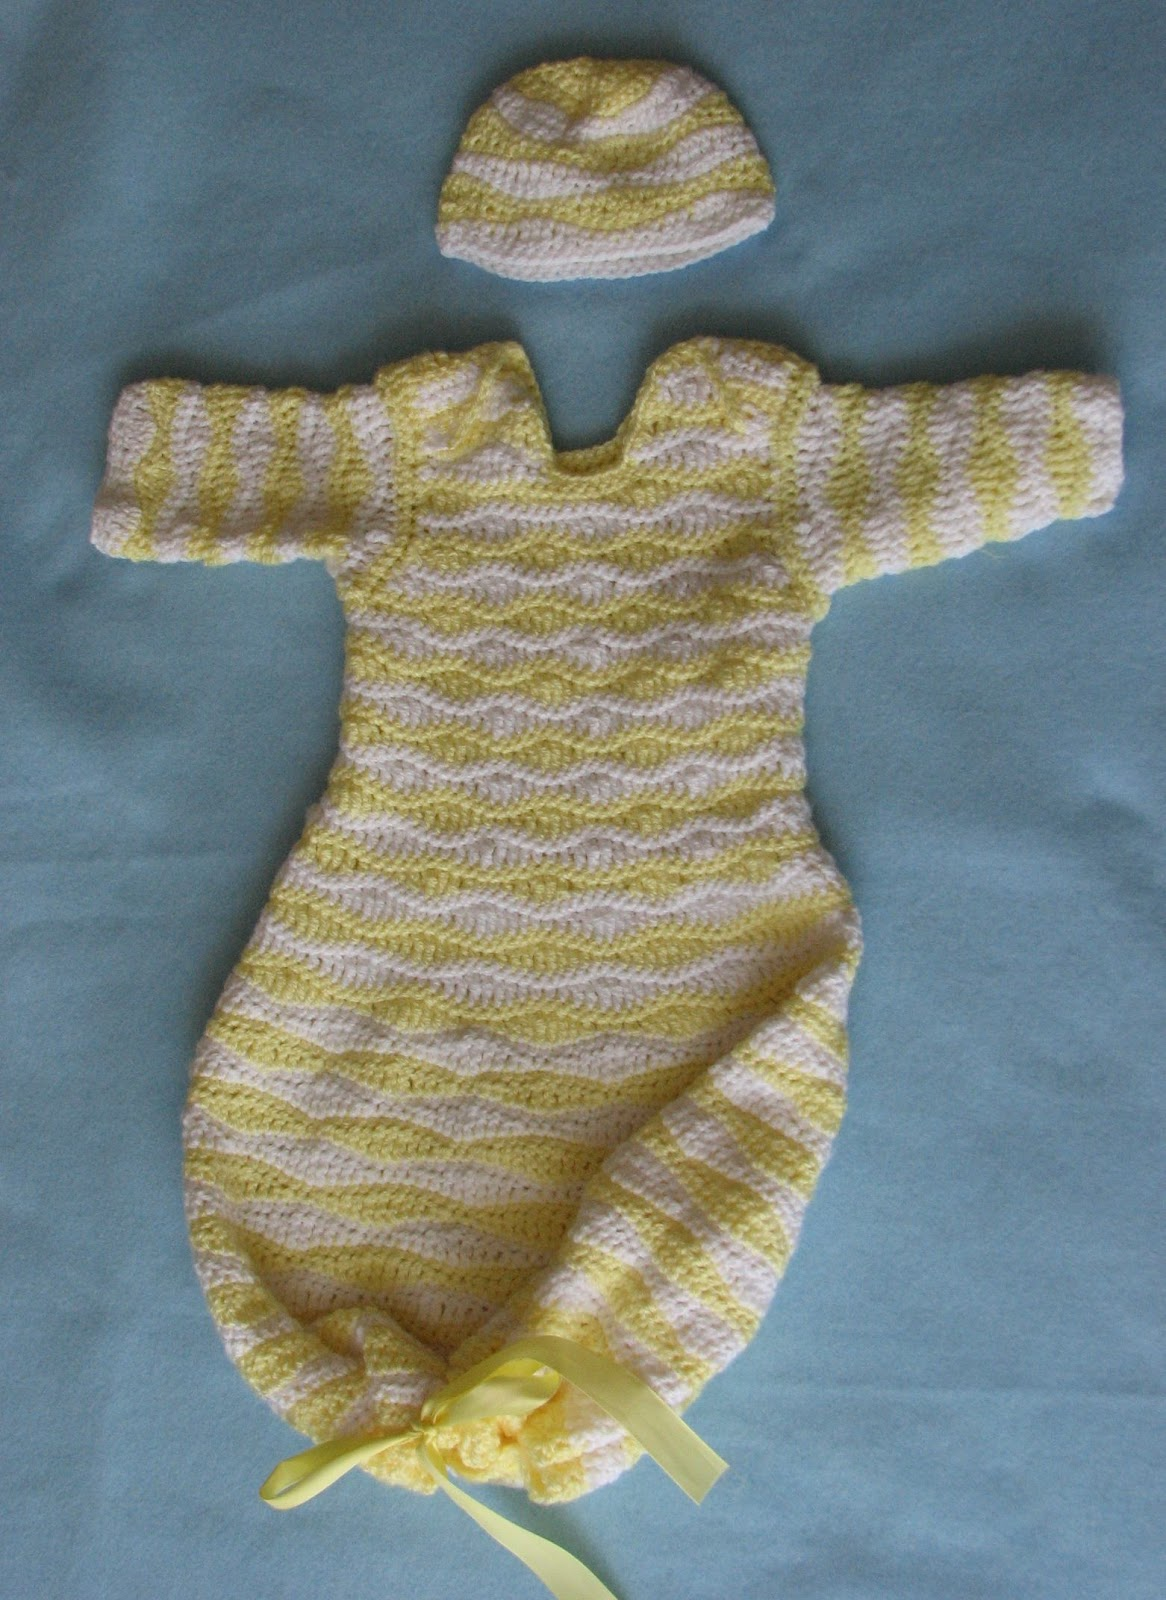 Donnas Crochet Designs Blog of Free Patterns: Pajamas For ...